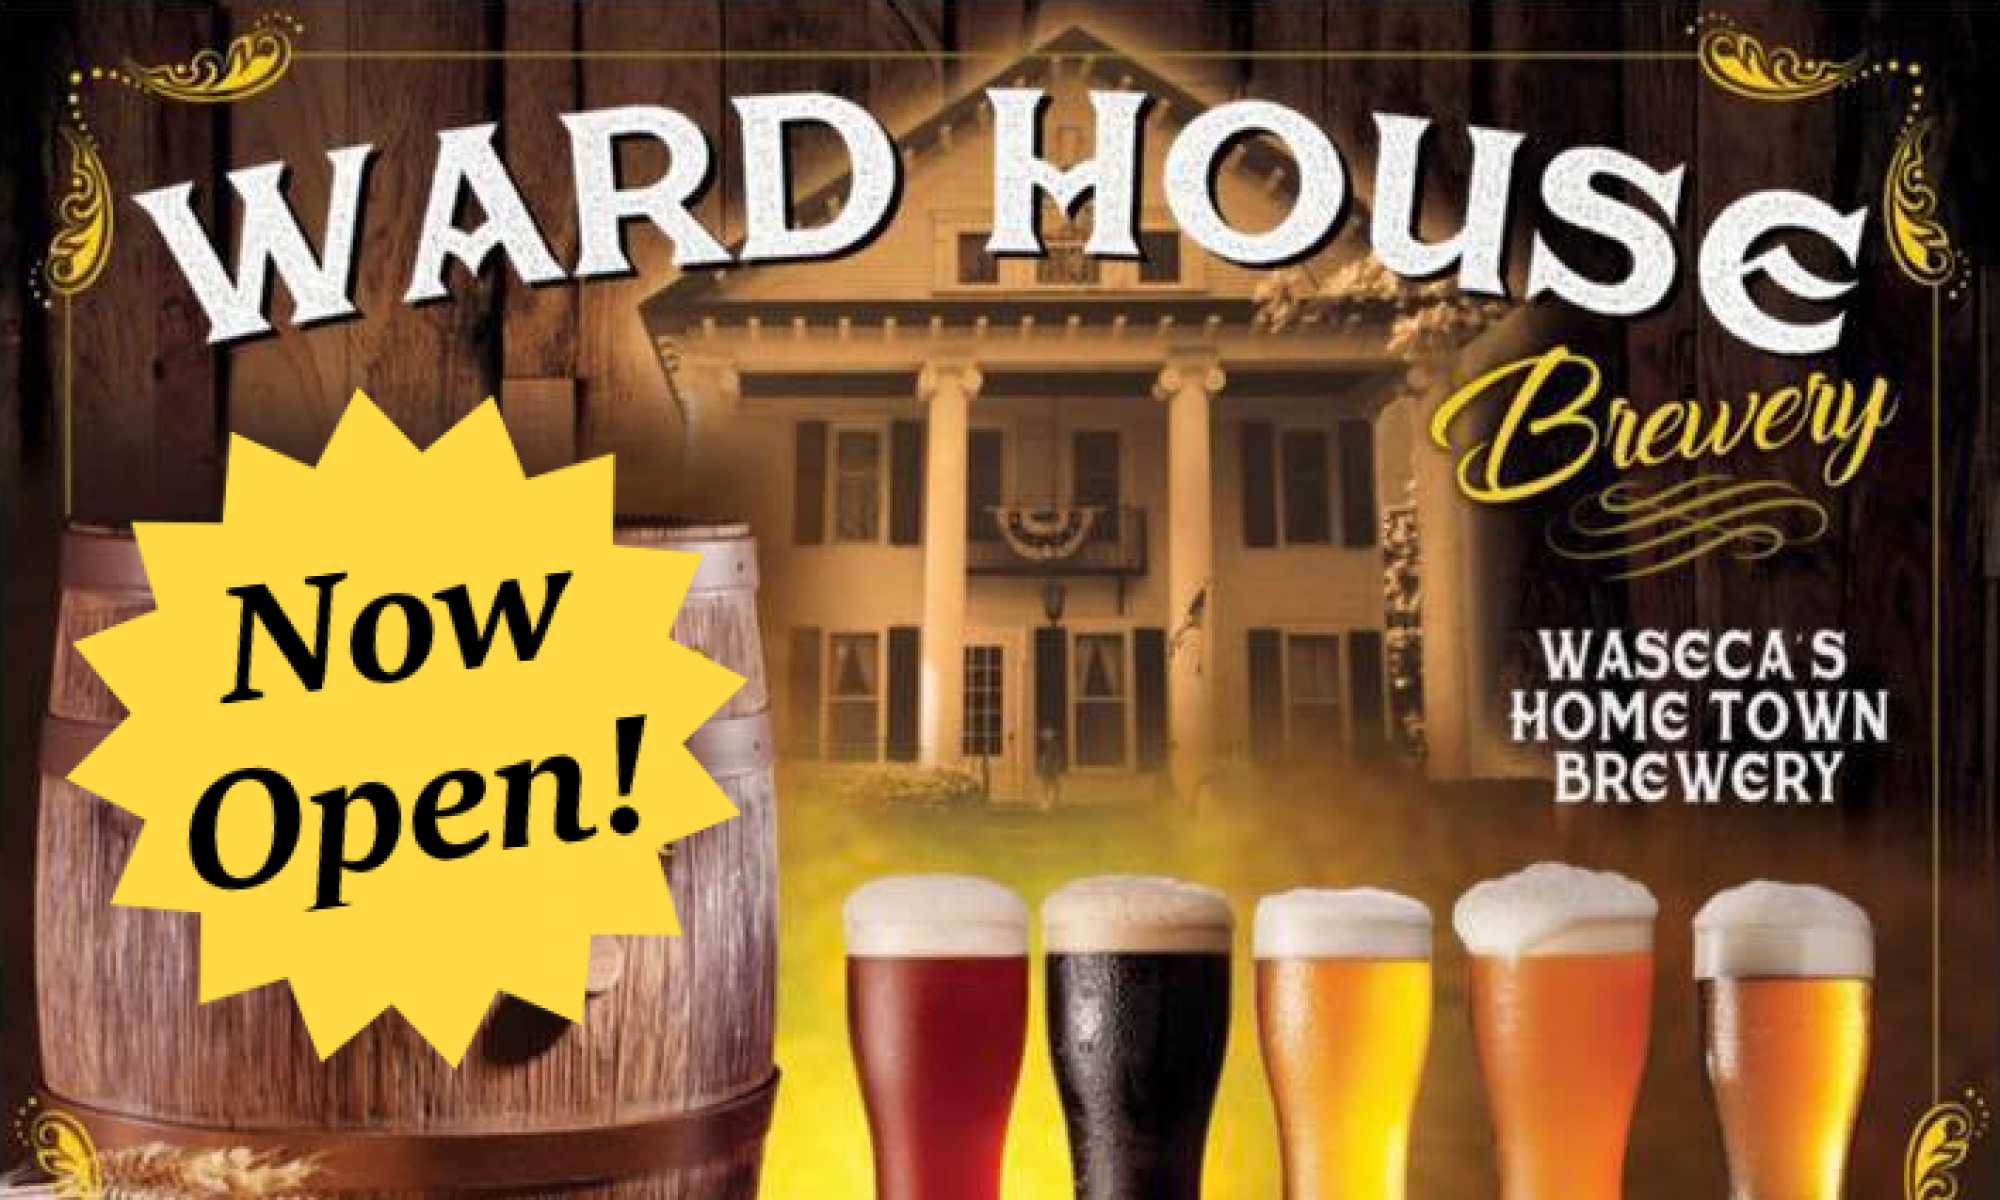 Ward House Brewery